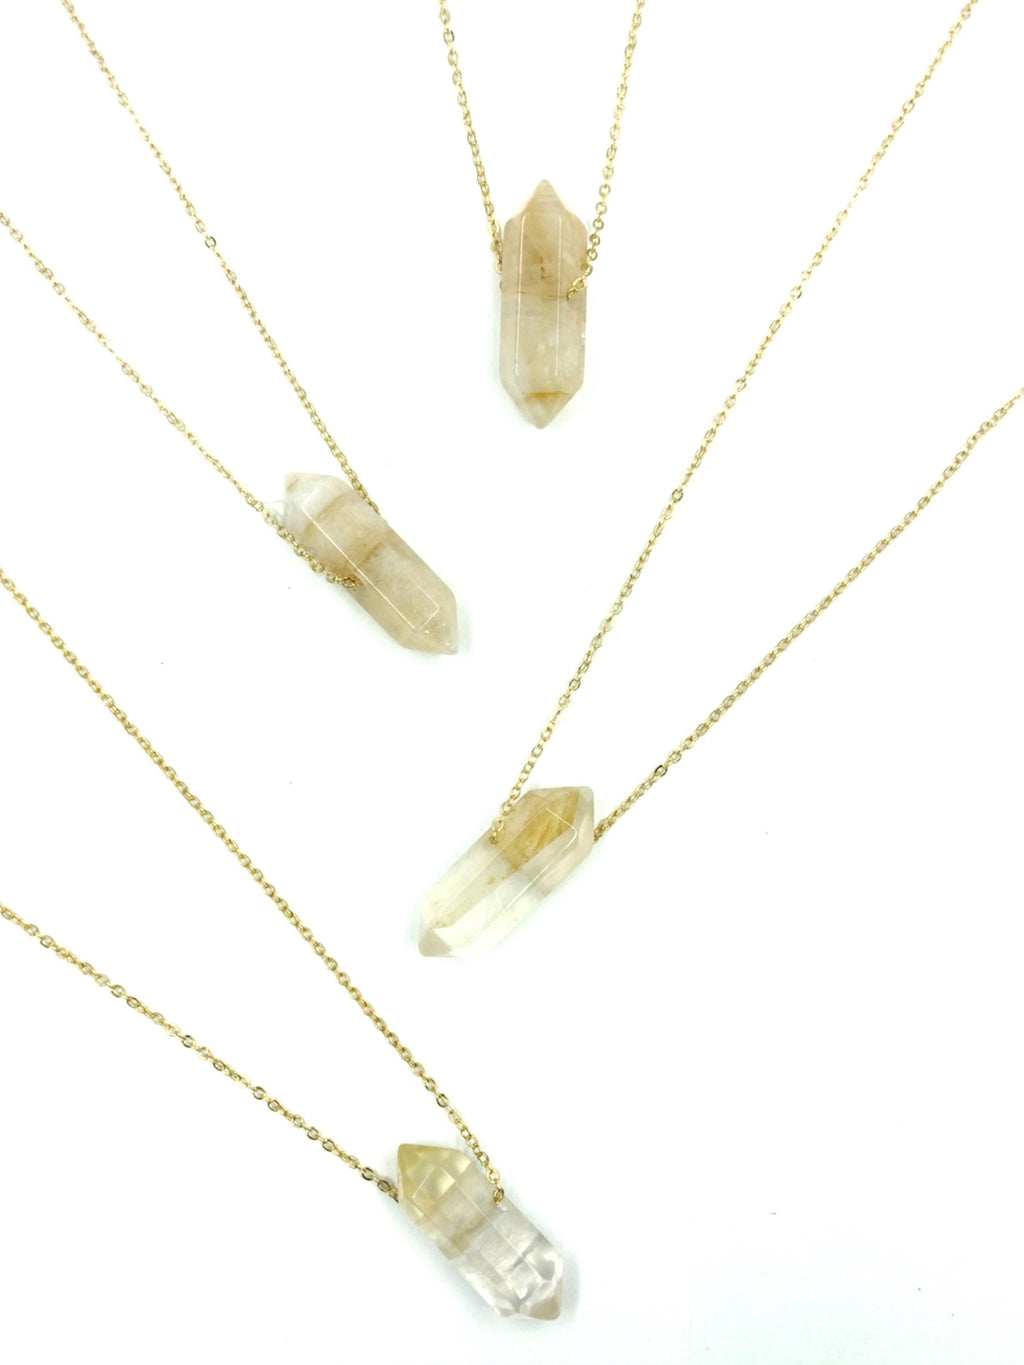 Citrine (Success) Double Point Wand Necklace